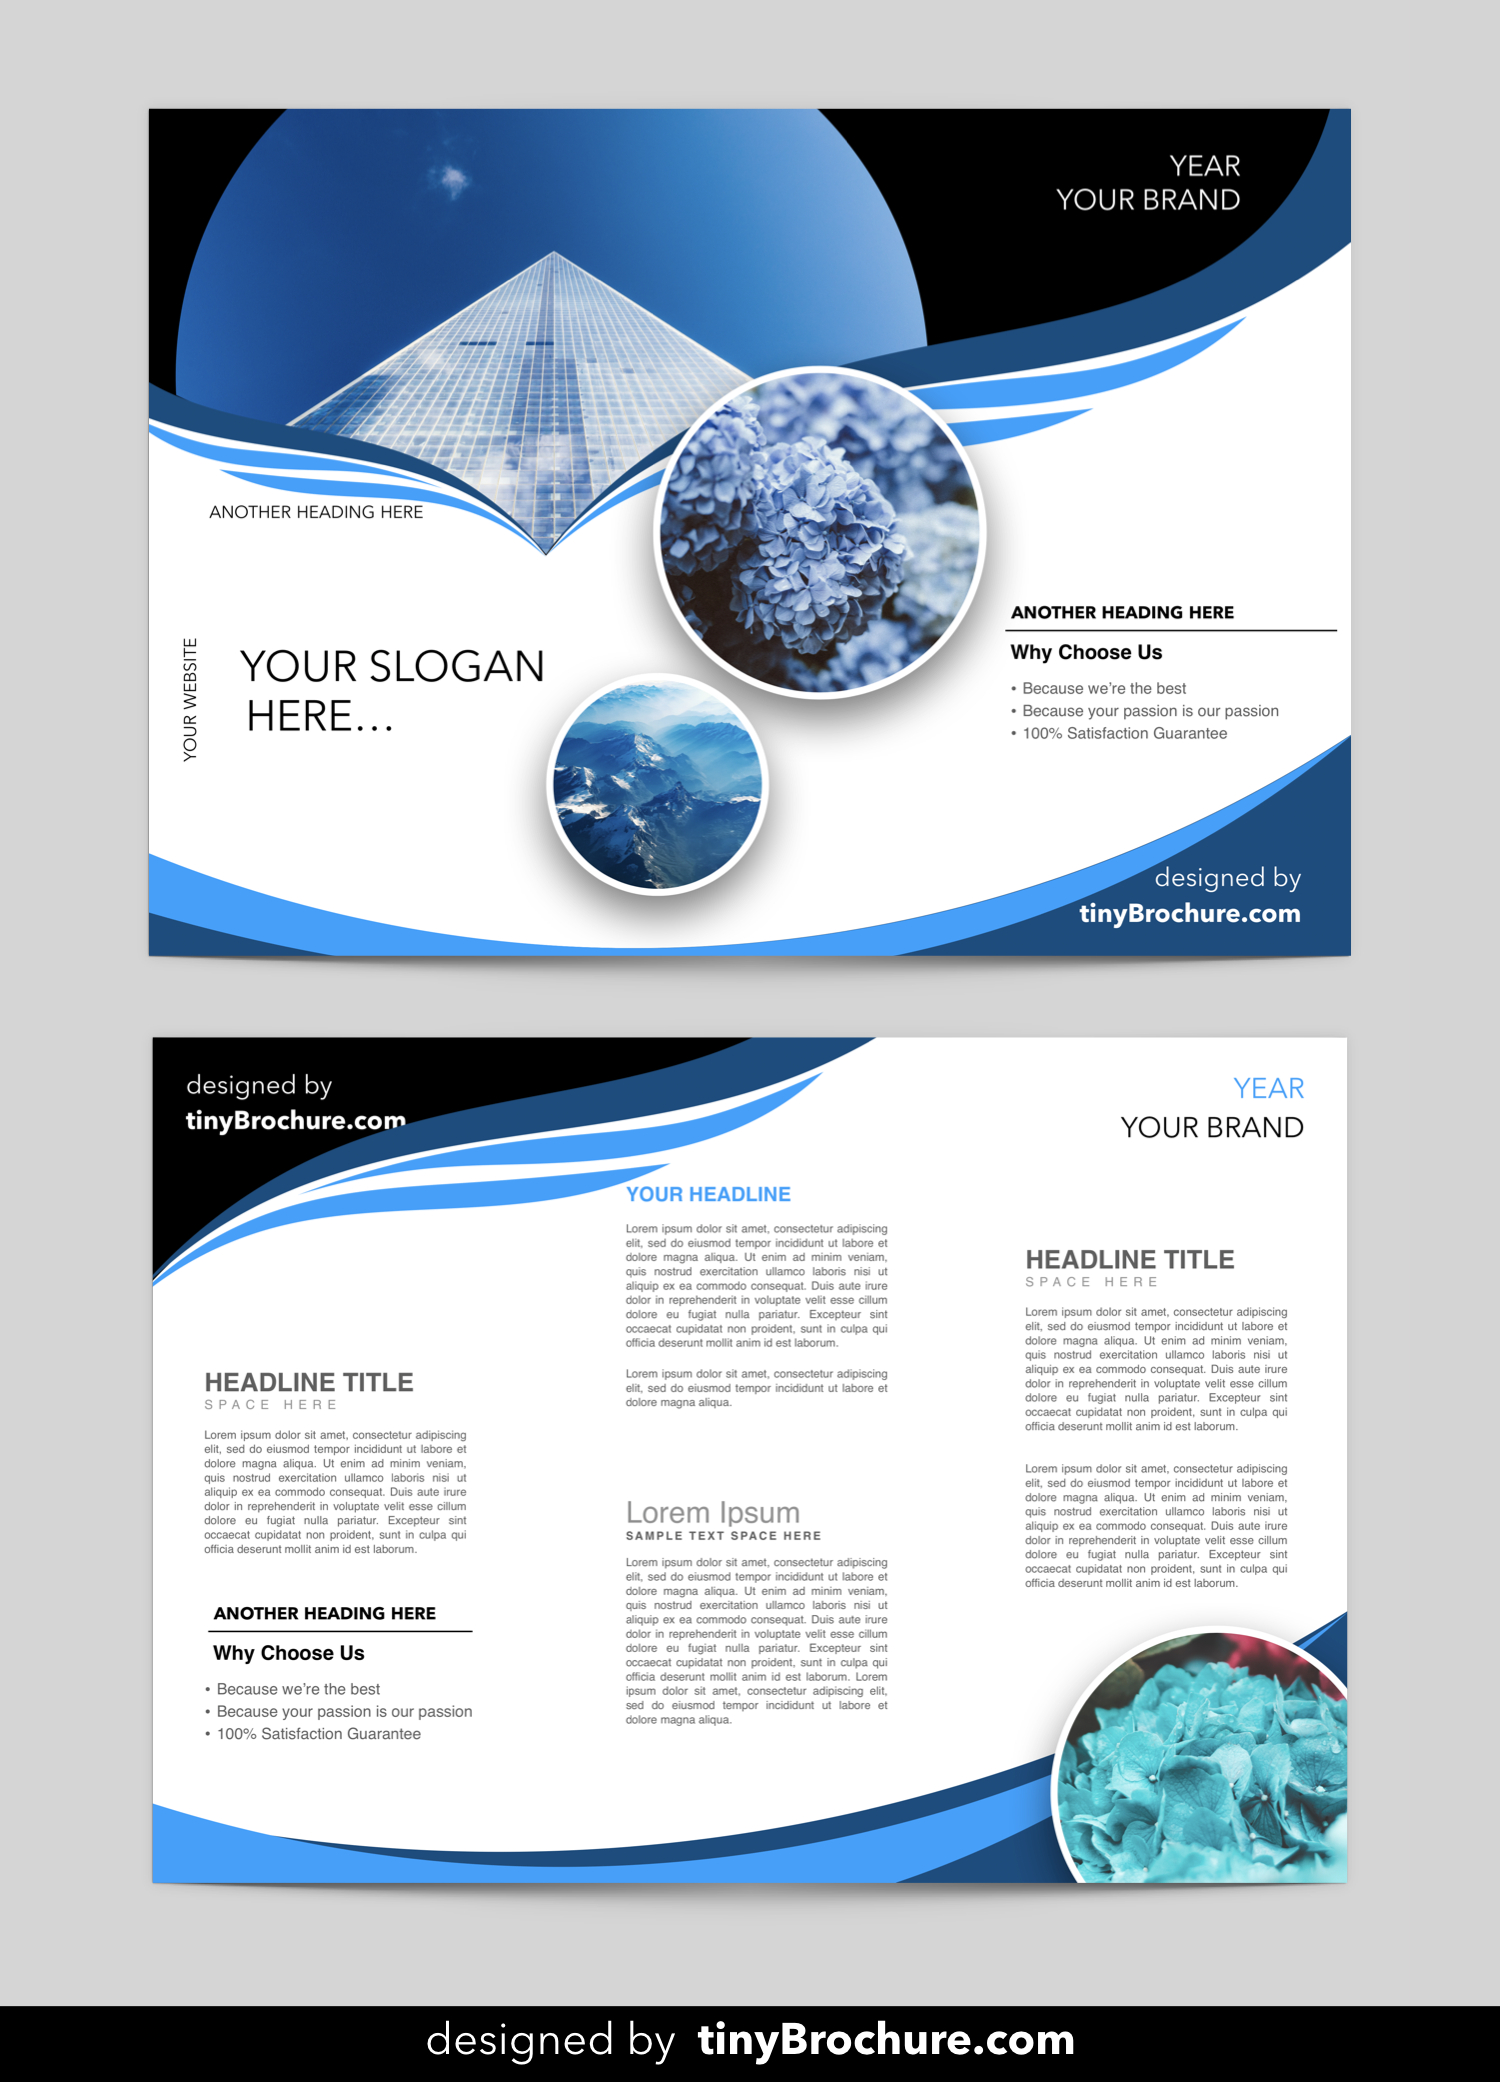 Editable Brochure Template Word Free Download | Brochure In Brochure Templates For Word 2007